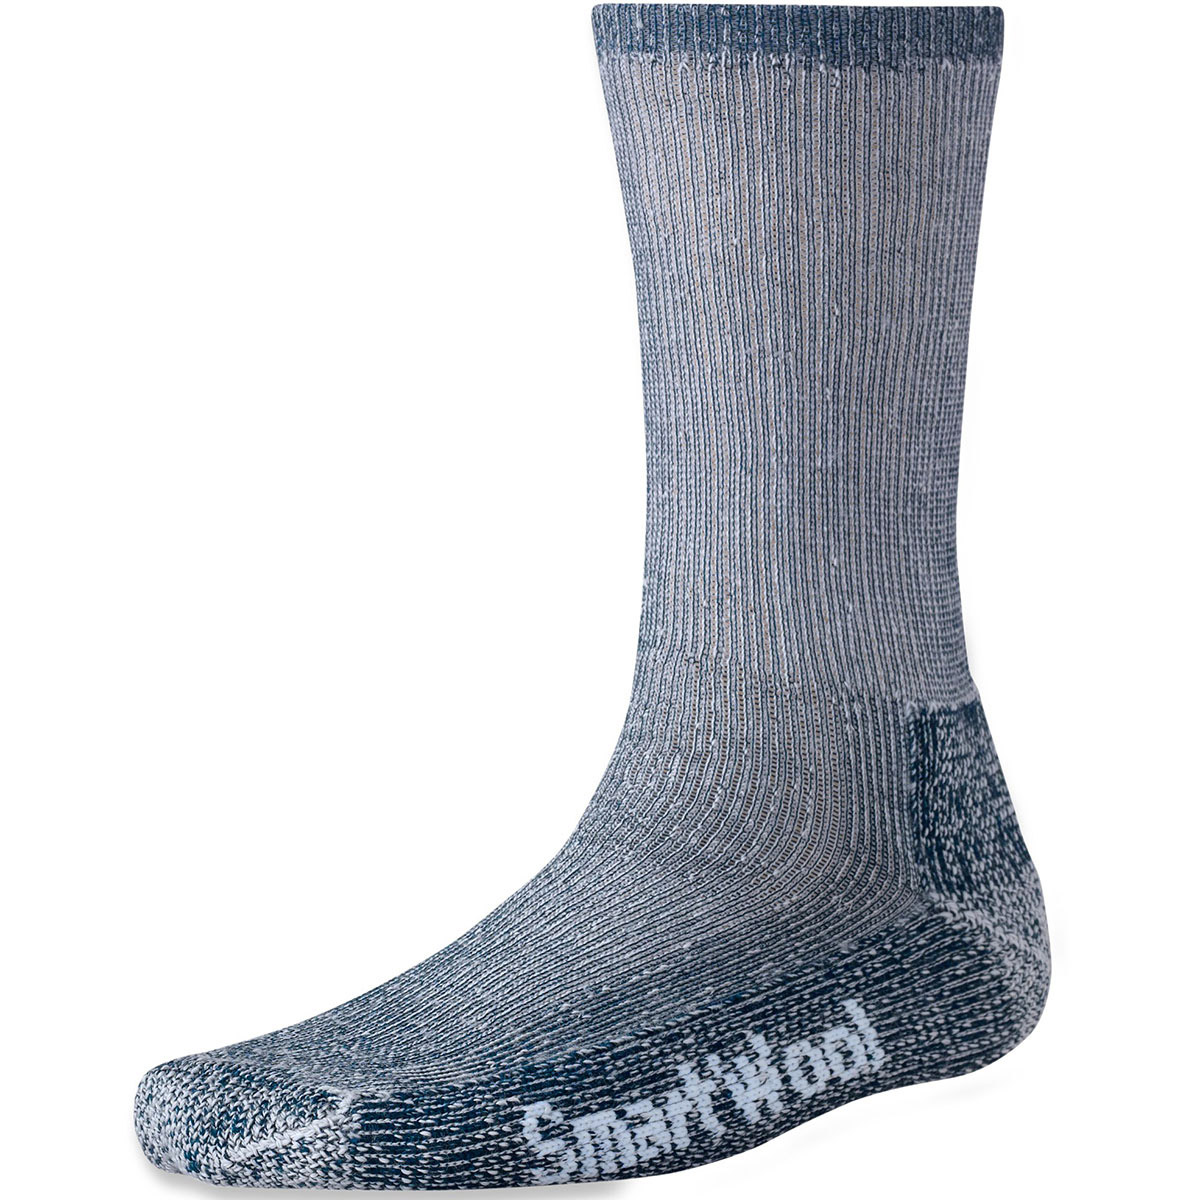 Smartwool Expedition Trekking Socks